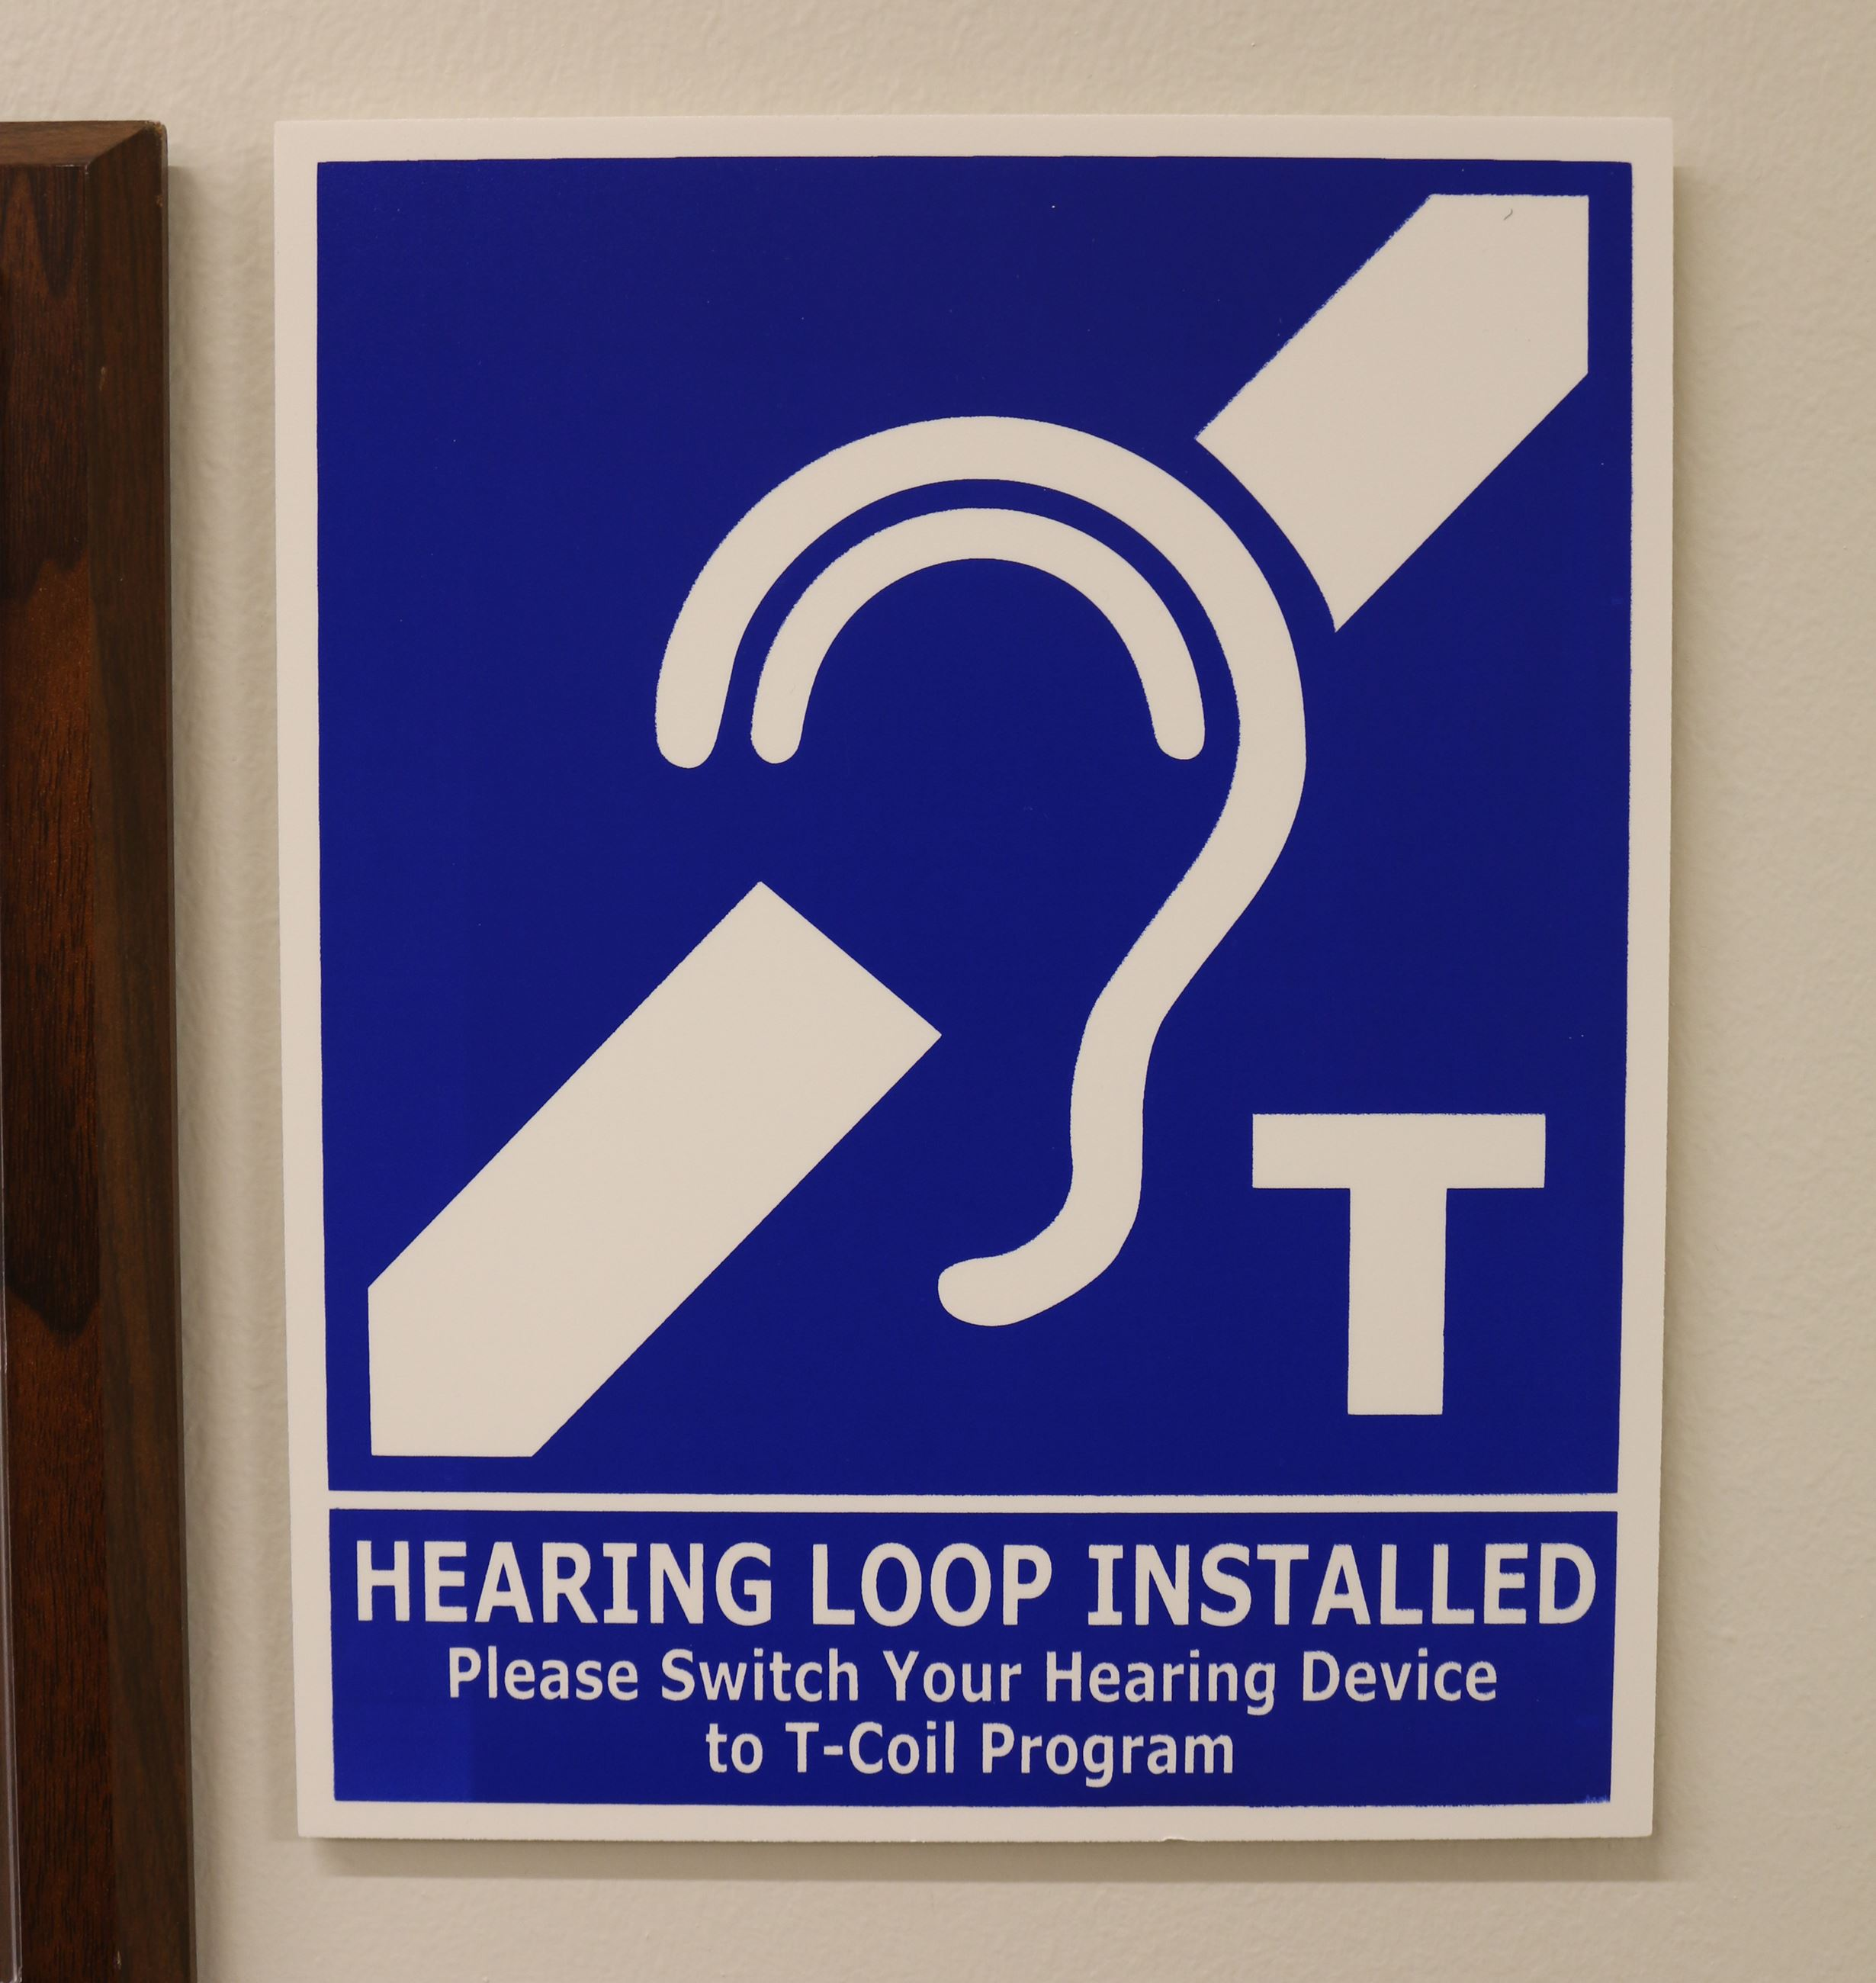 Hearing Loop photo 2 - Sign in Council chambers